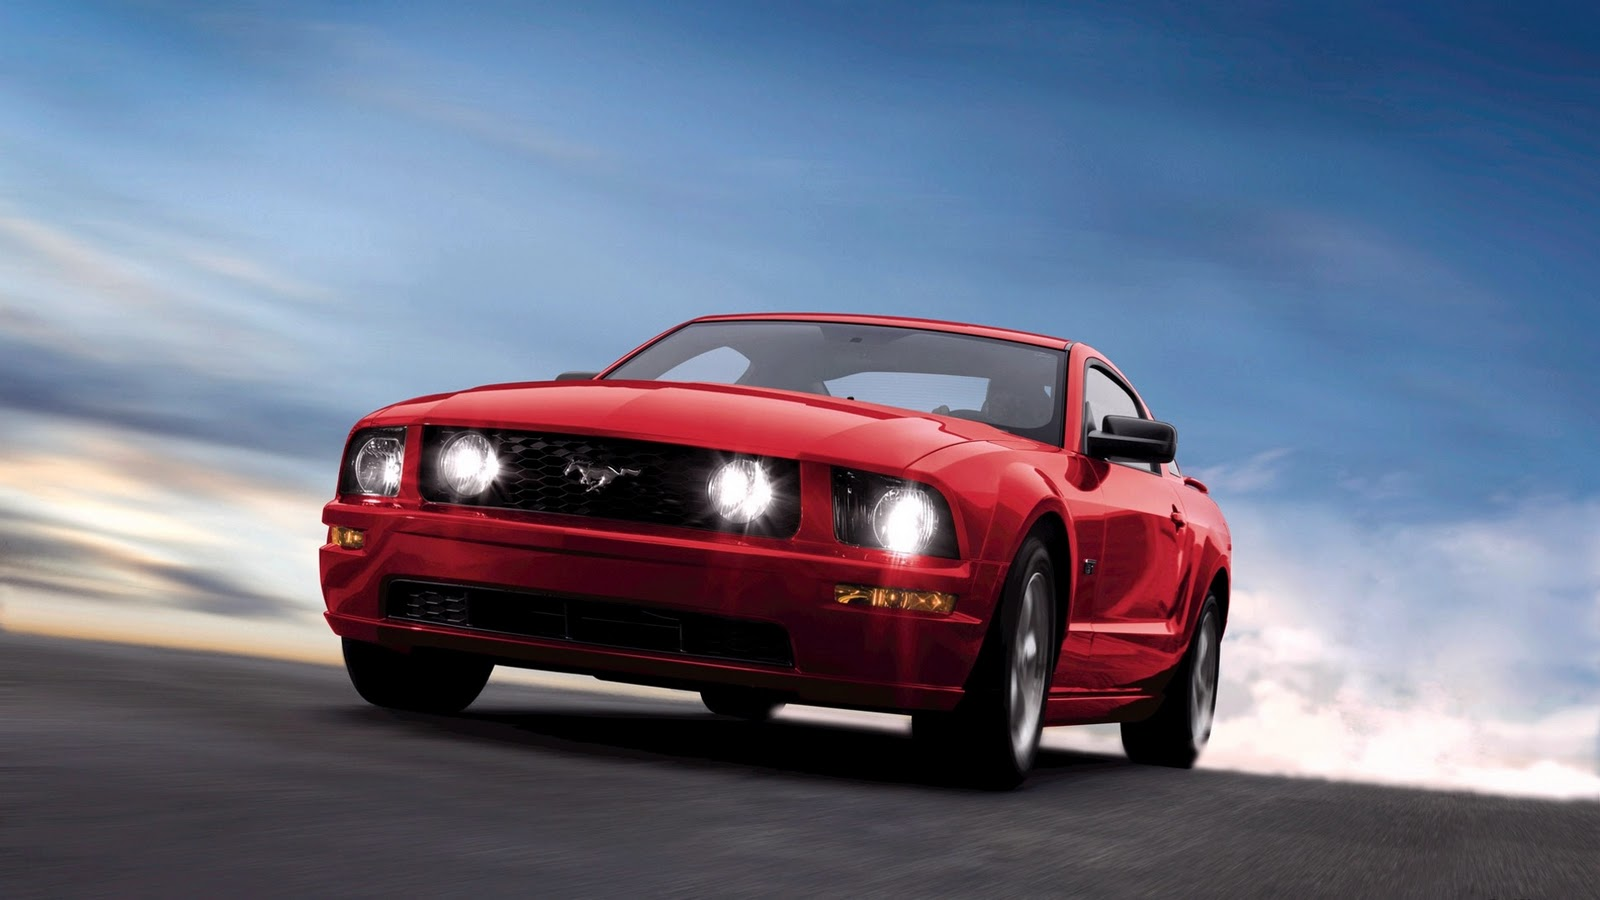 ford mustang desktop wallpaper 22jpg 1600x900